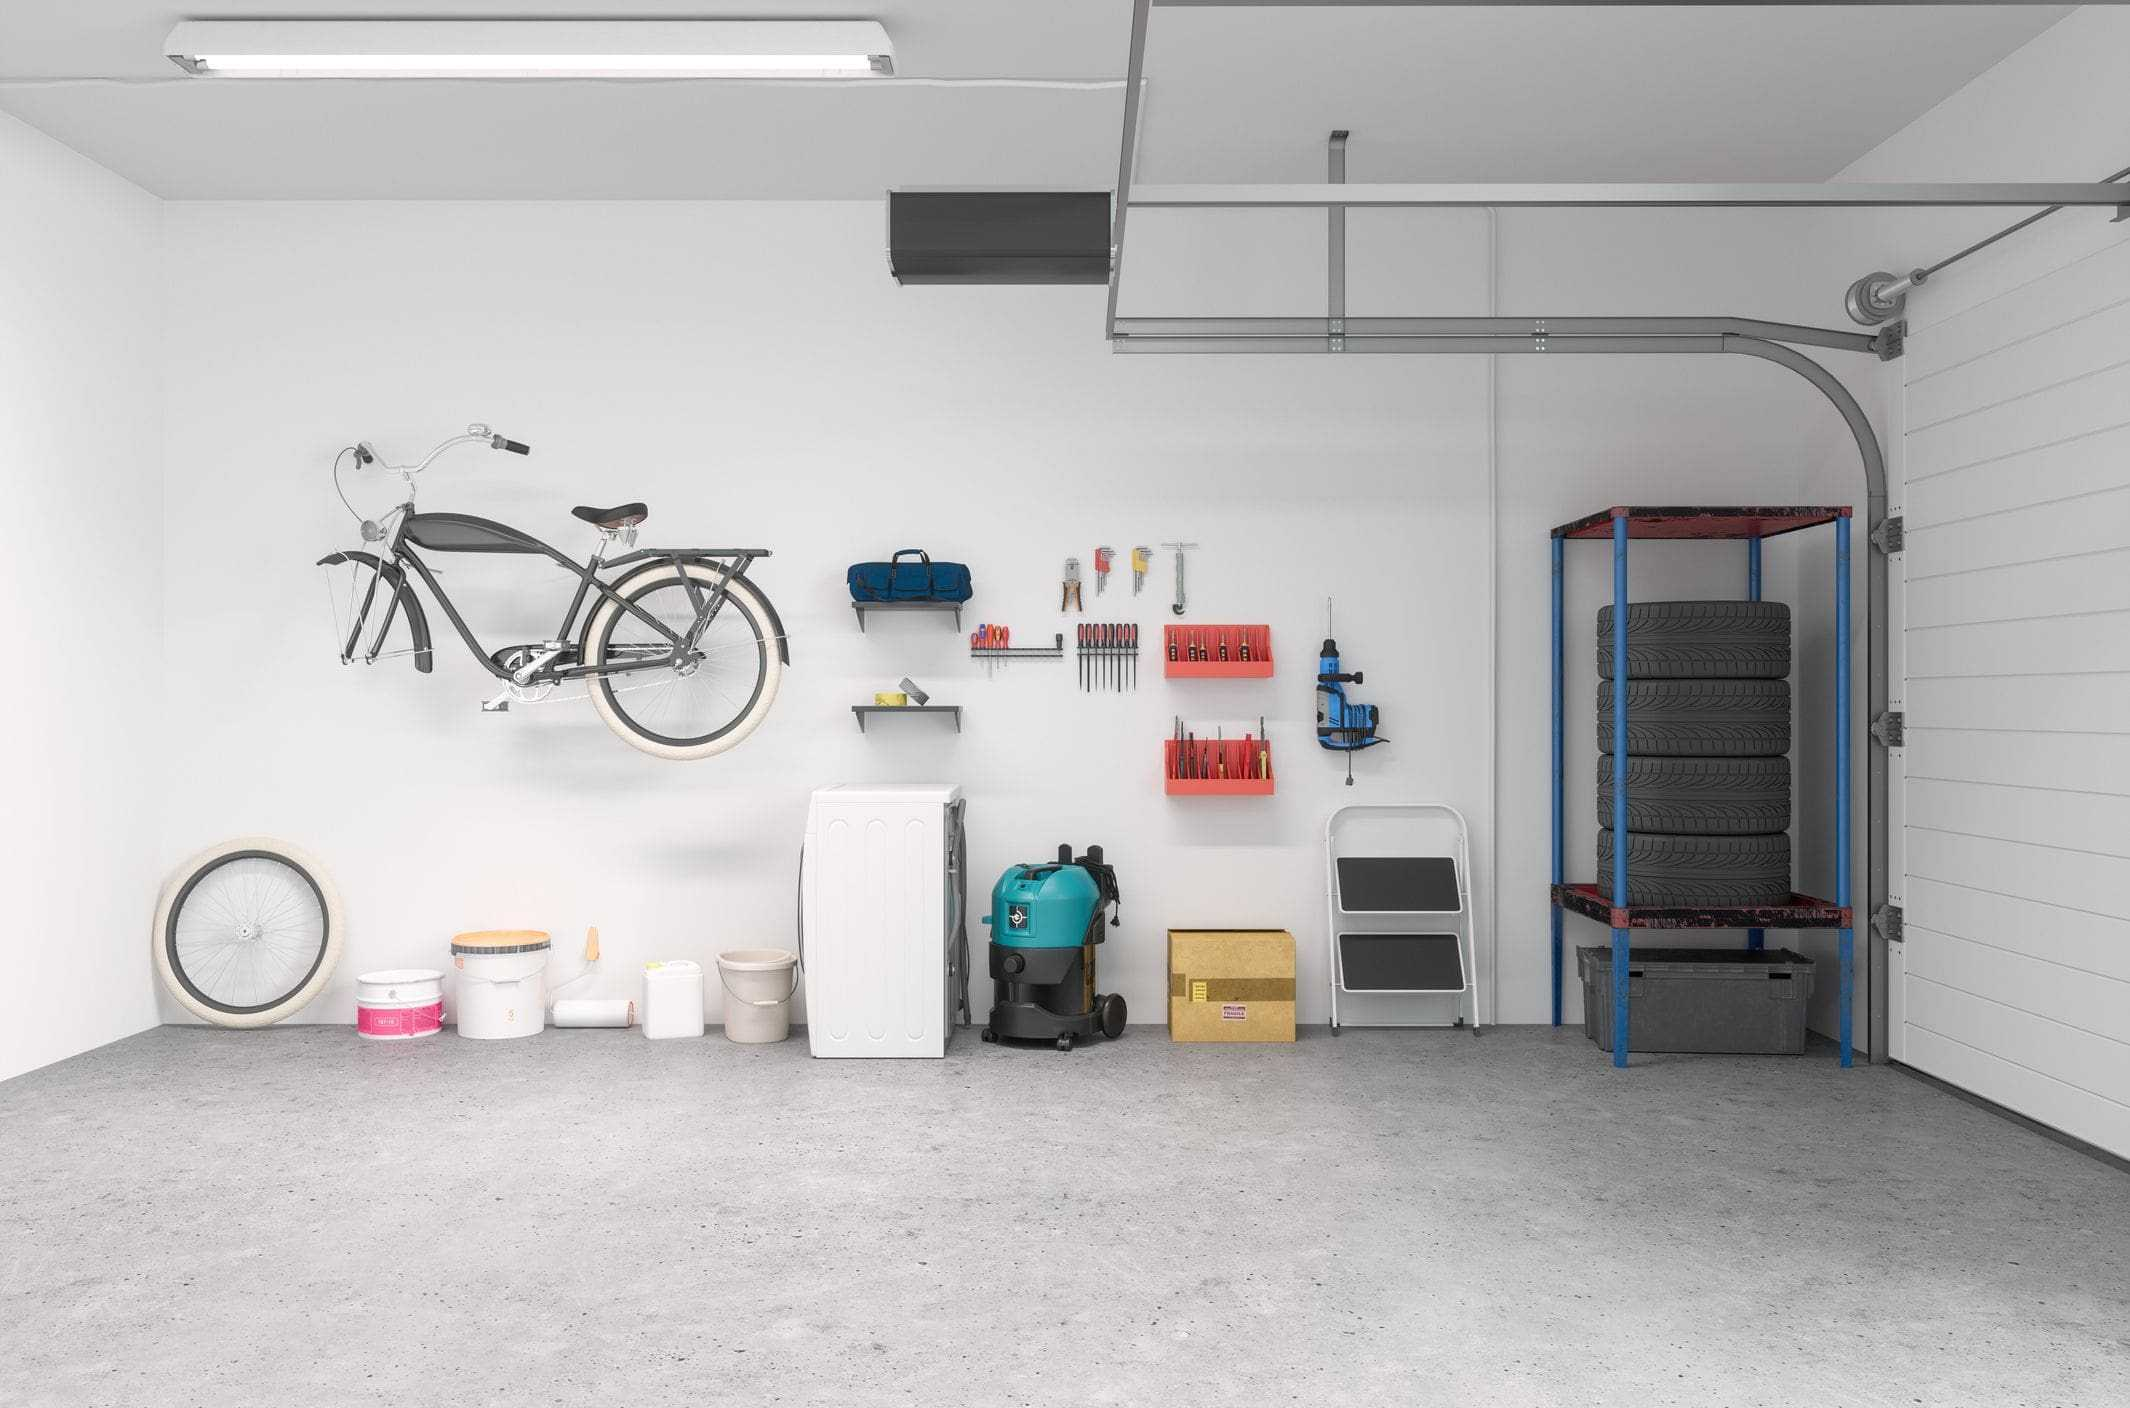 interior of garage with tracks and opener